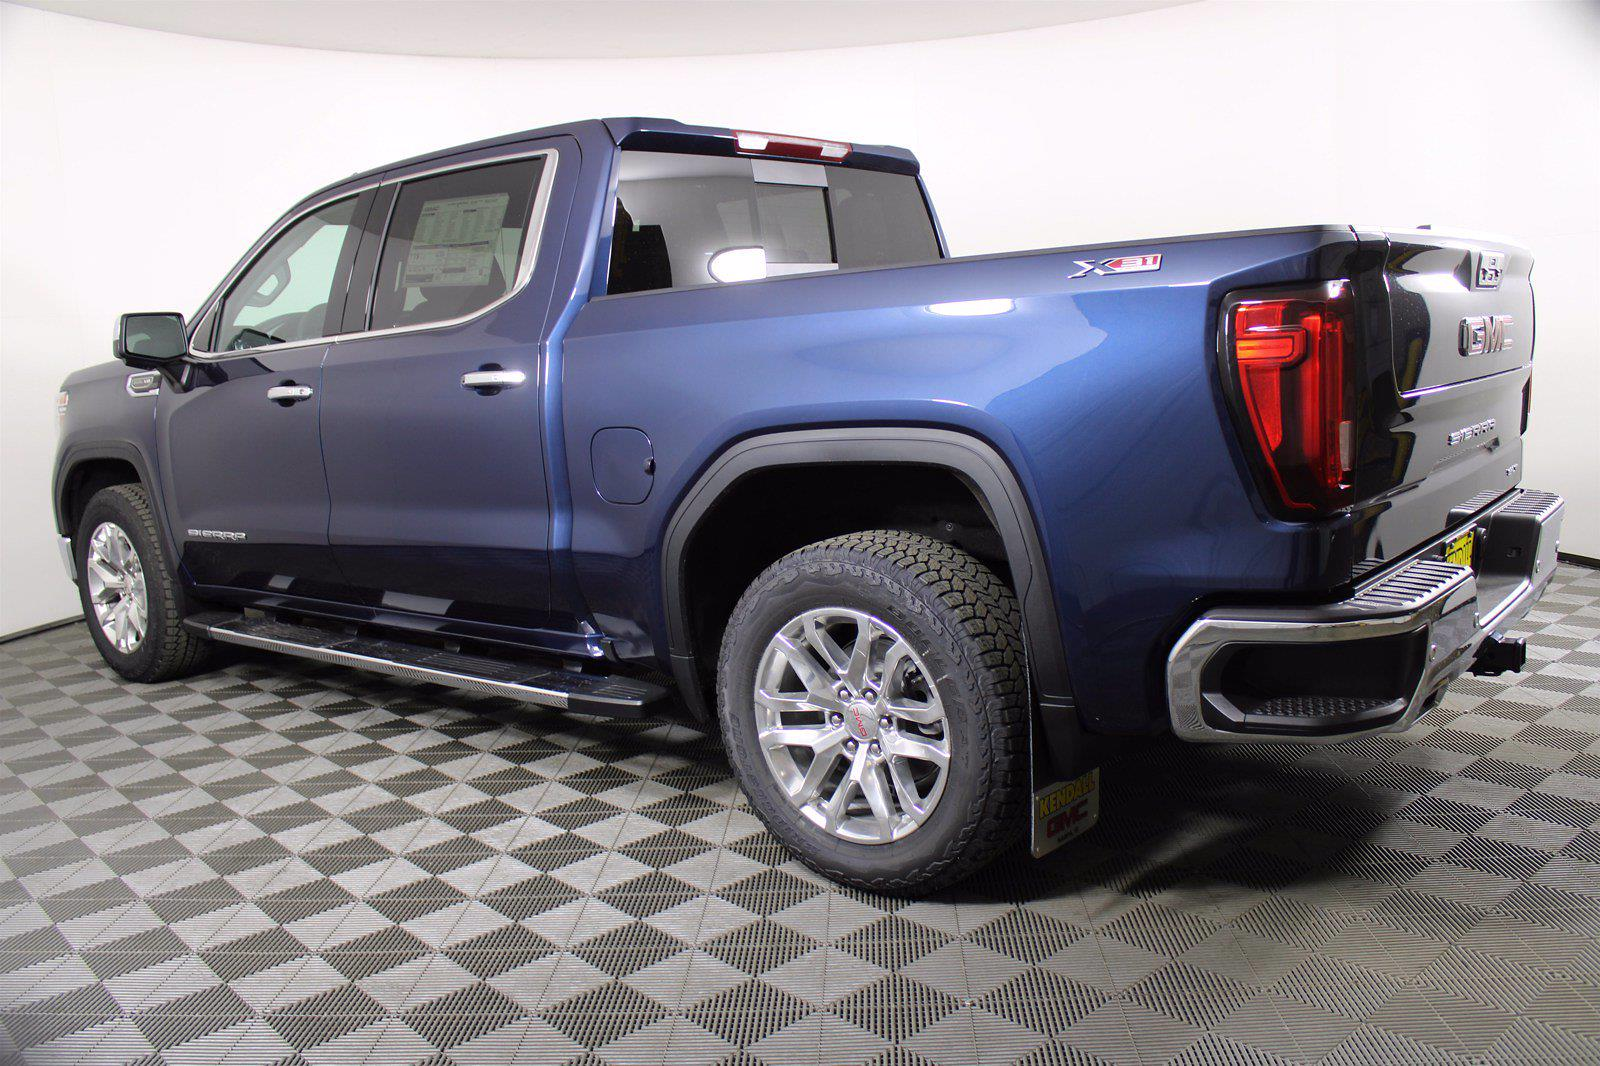 2021 GMC Sierra 1500 Crew Cab 4x4, Pickup #D410578 - photo 1